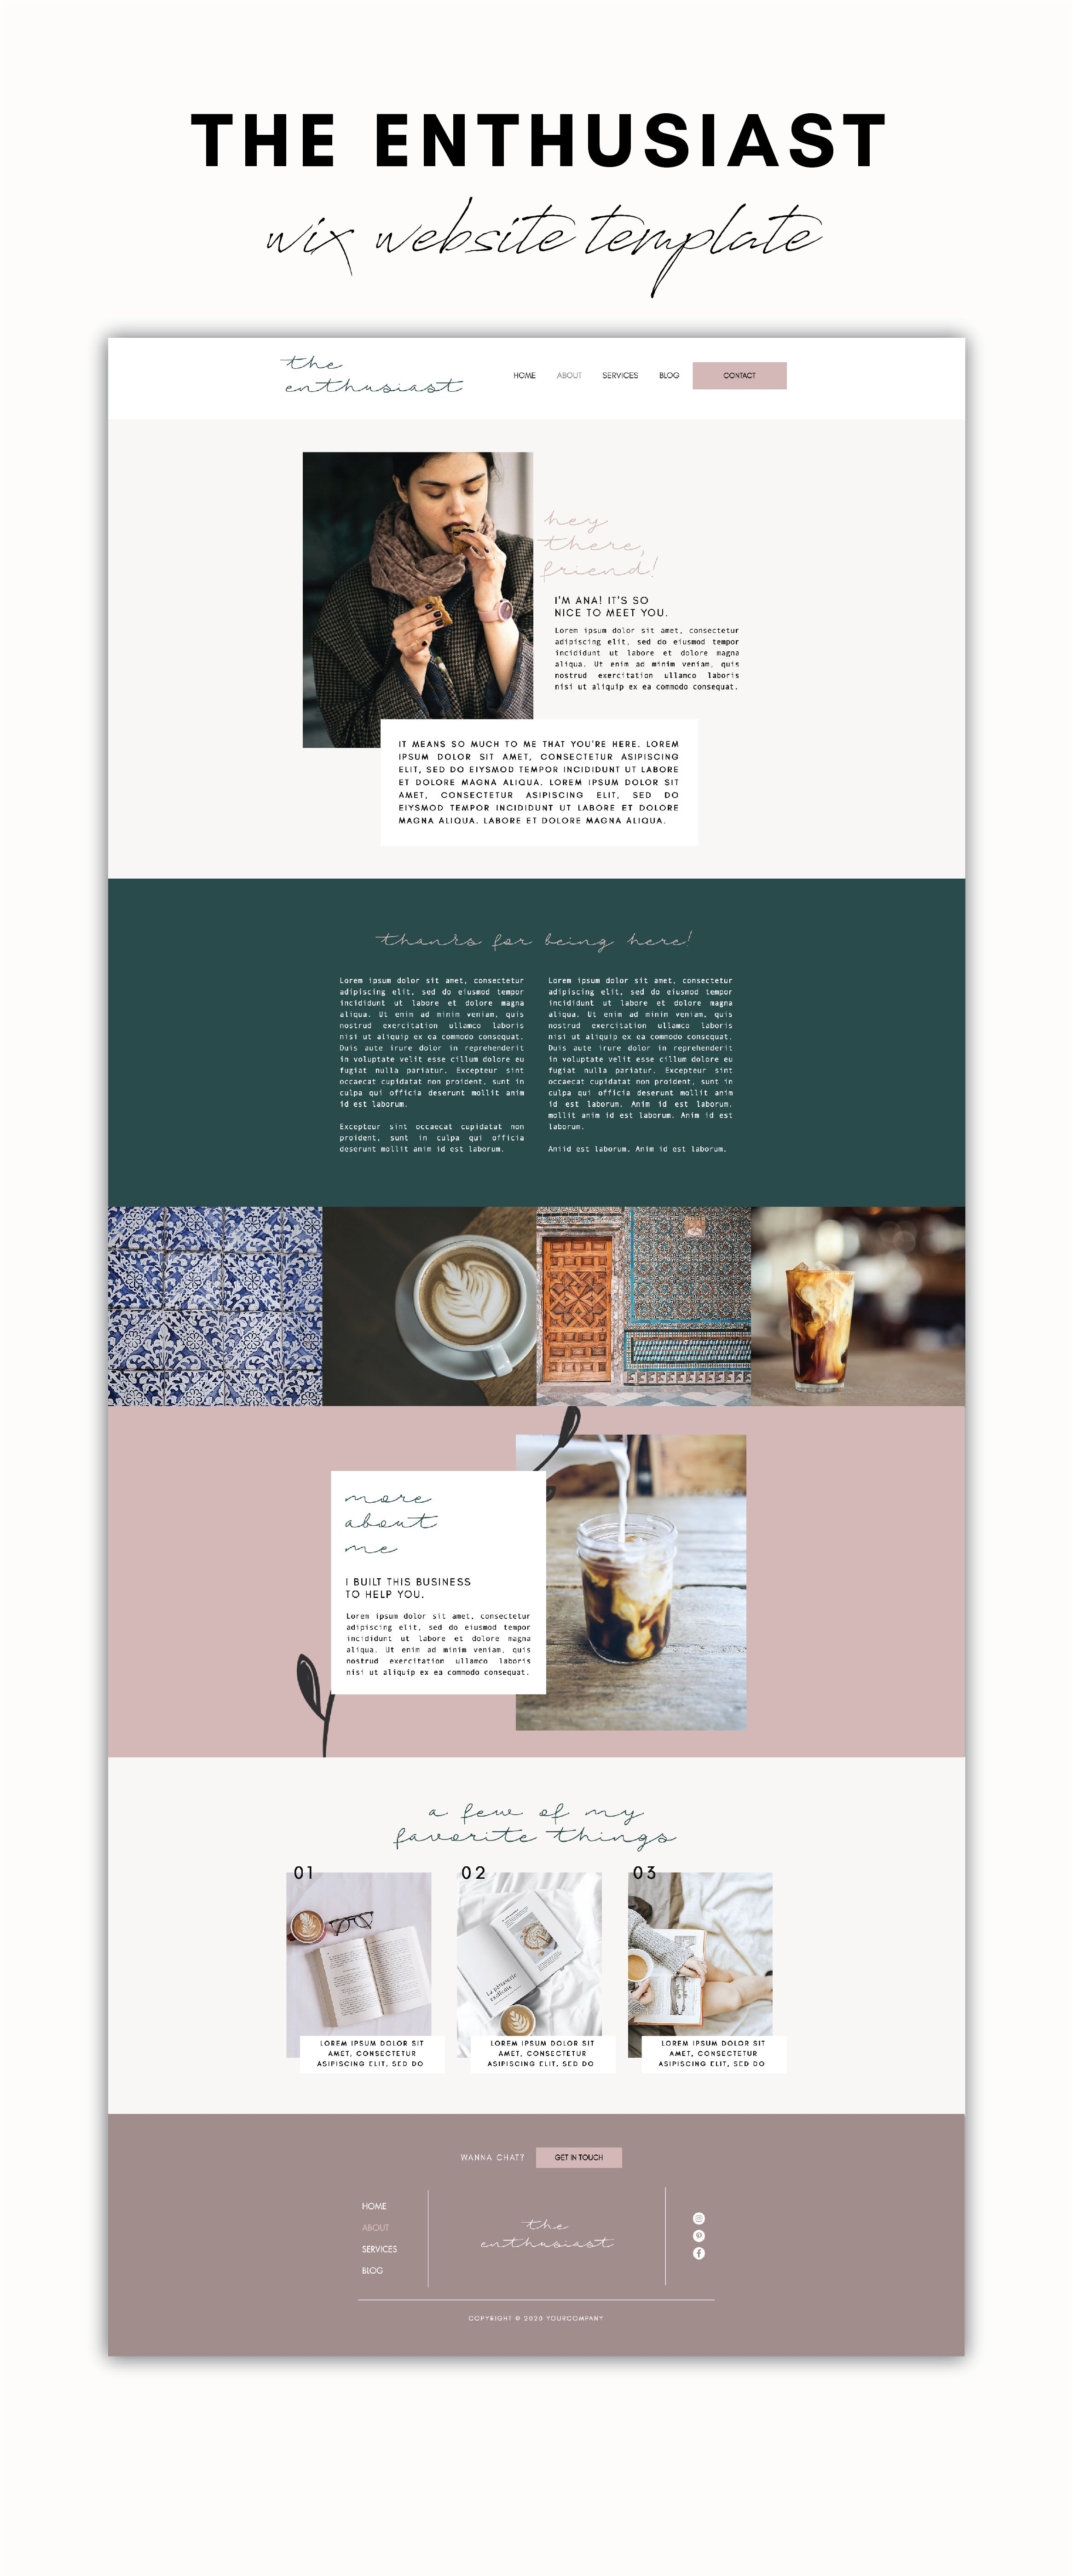 The Enthusiast Wix Website Template Tiny Pine Creative In 2020 Wix Website Templates Wix Website Design Wix Website